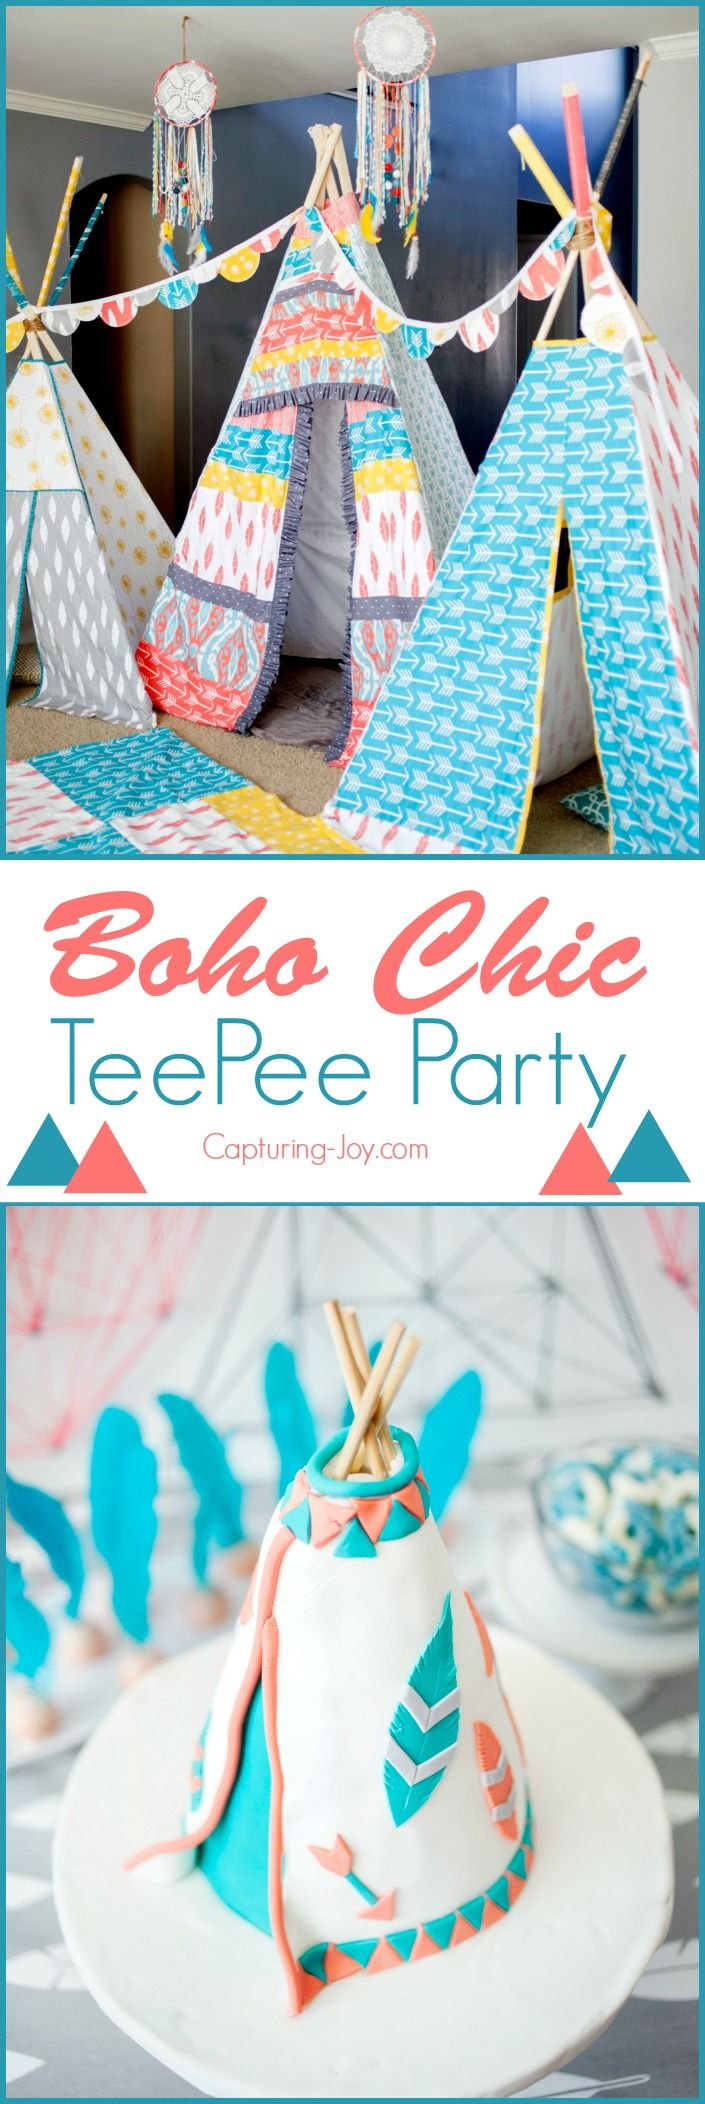 Tribal Boho Chic TeePee Party. Great party theme for a preteen! Capturing-Joy.com